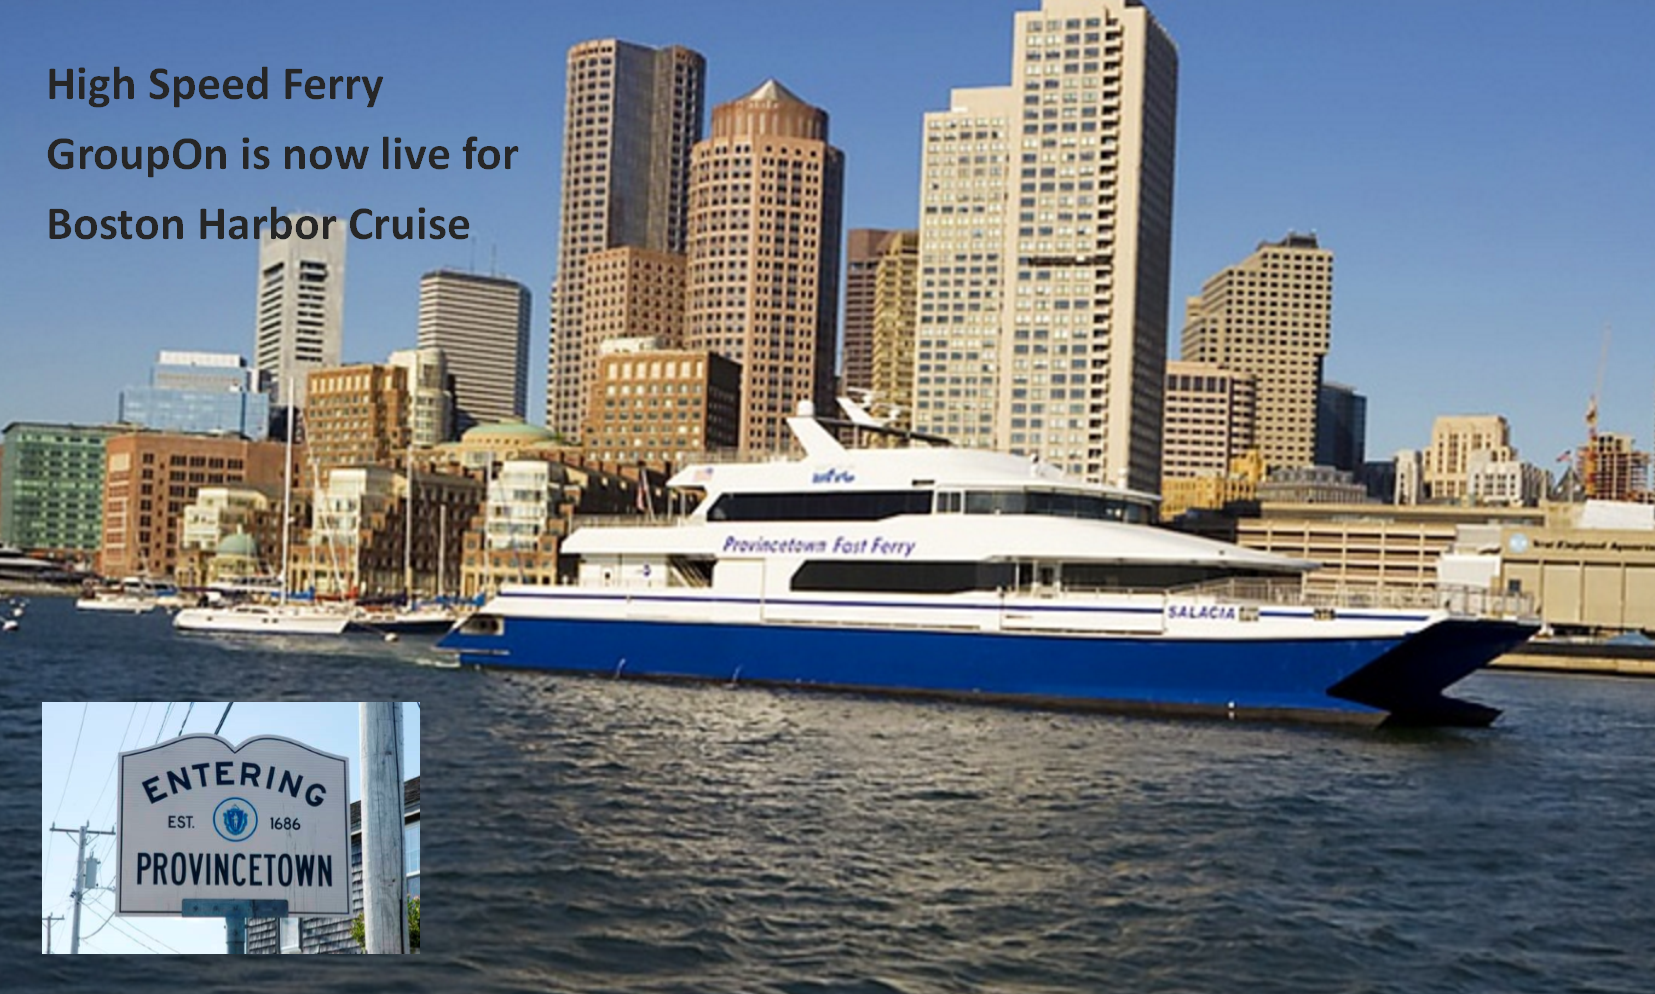 Plymouth to ptown ferry groupon